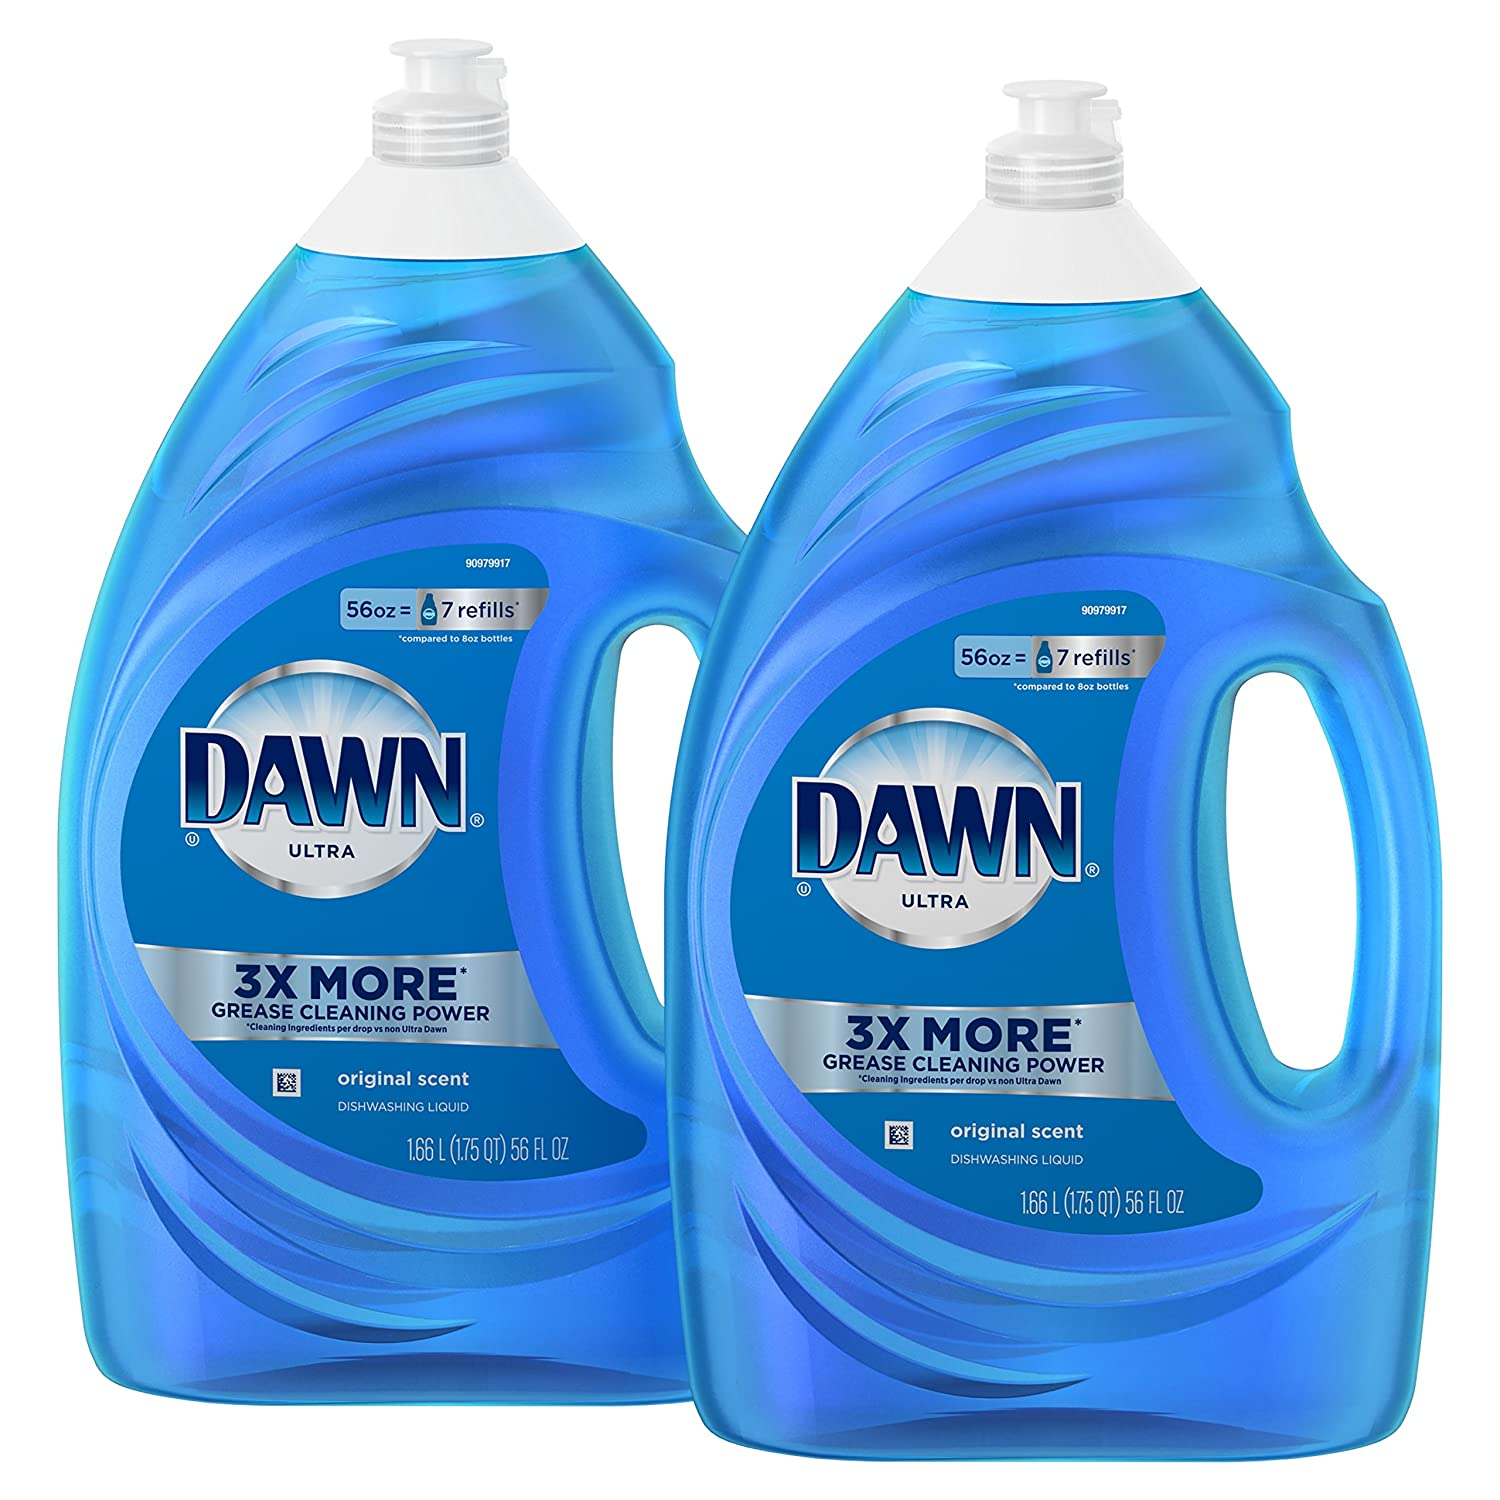 Dawn Ultra Dishwashing Liquid Dish Soap, Original Scent, 2 Count, 56 Oz. by Dawn